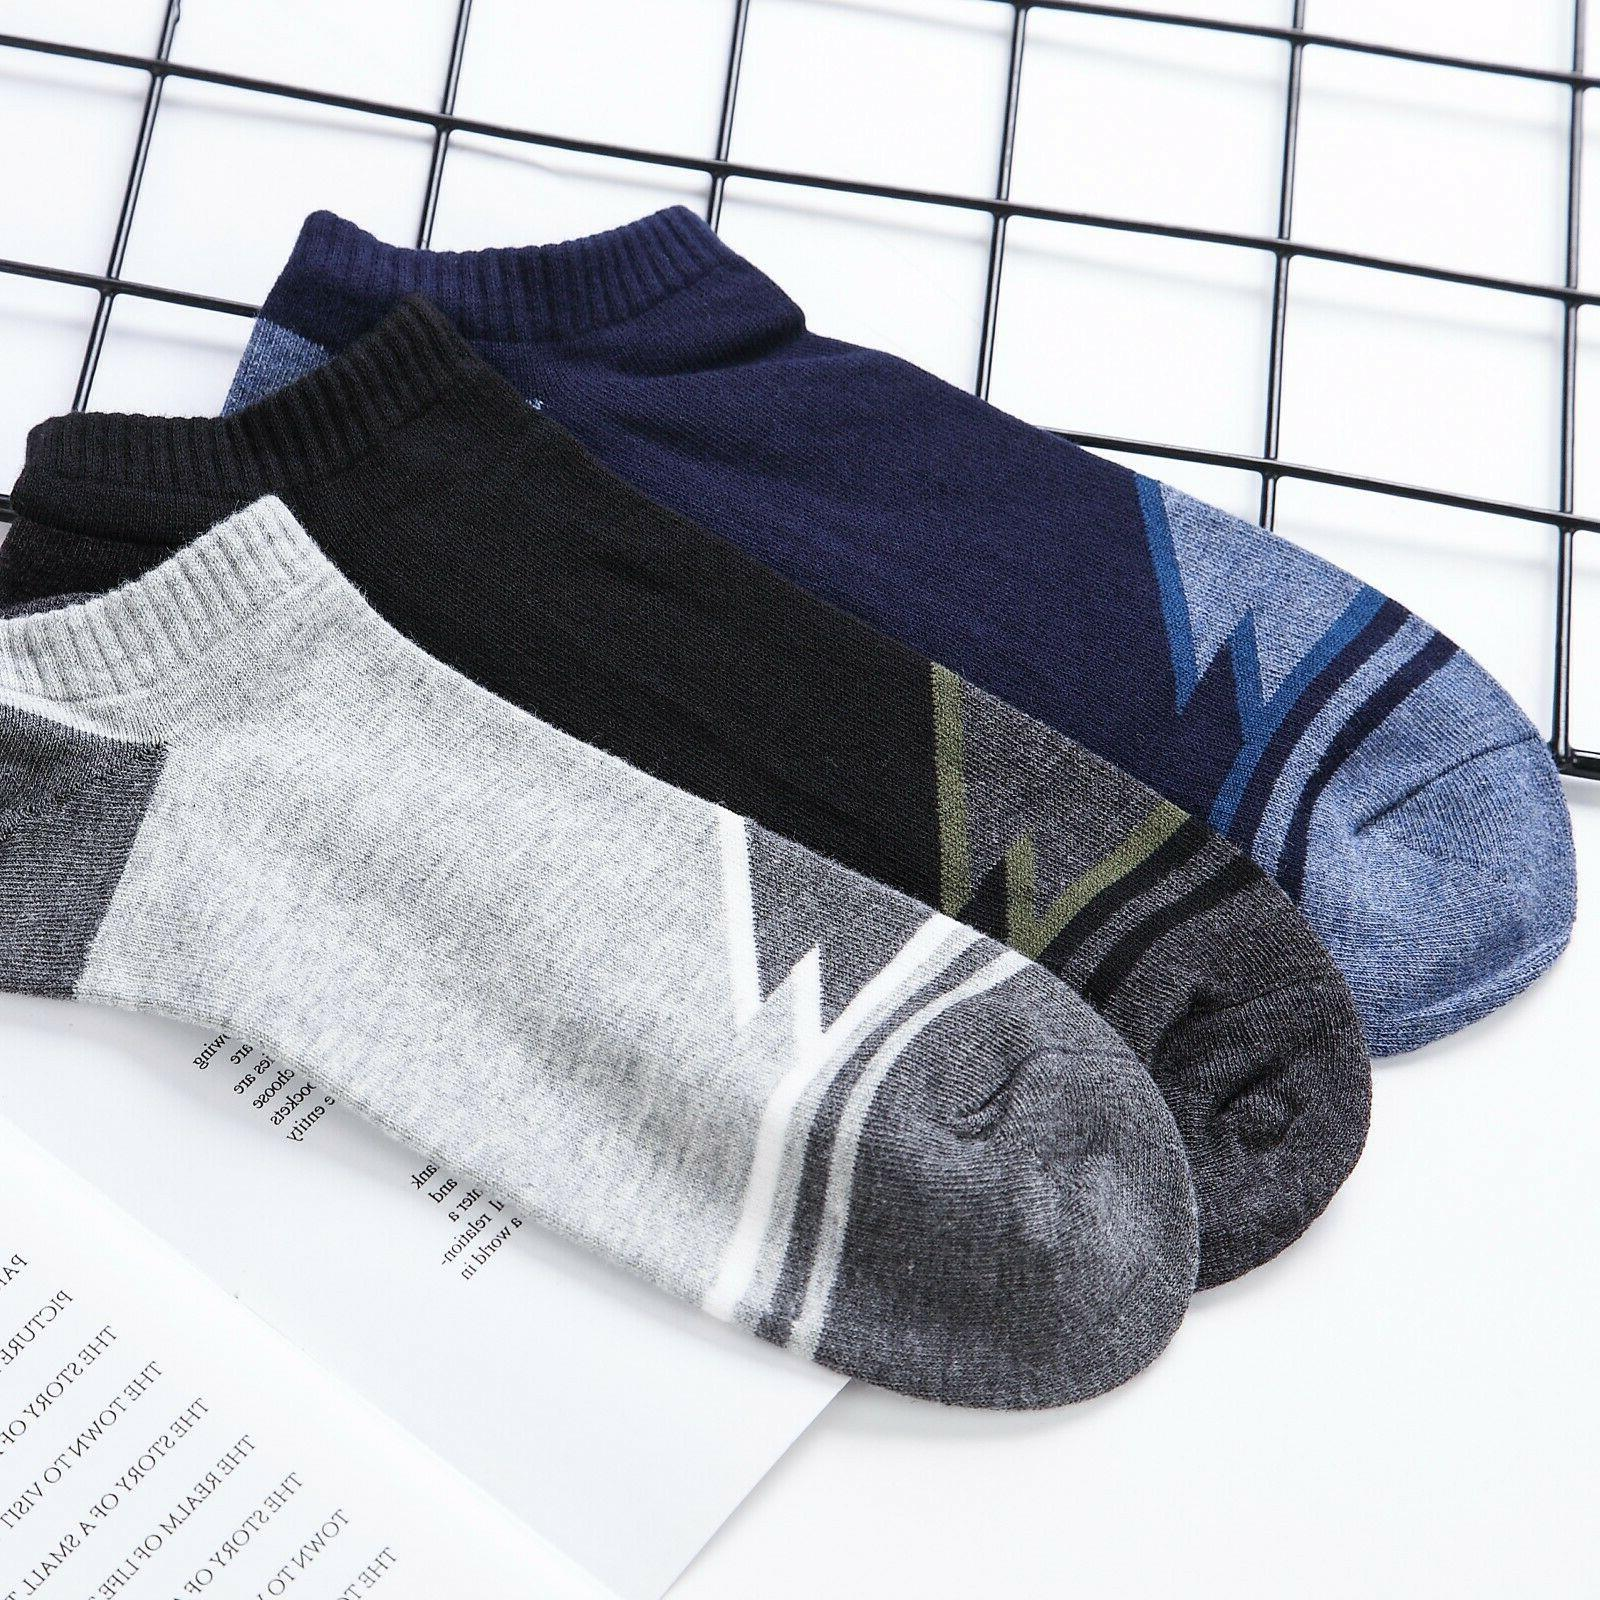 6 Pairs Mens Low Cut Ankle Cotton Sport Socks,Antibacterial